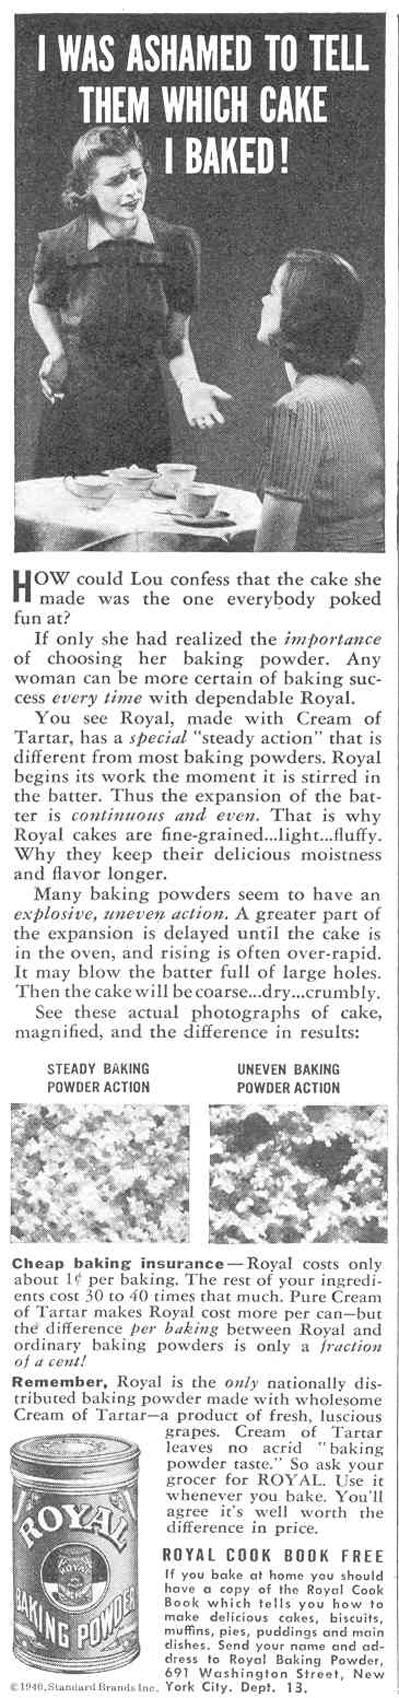 ROYAL BAKING POWDER GOOD HOUSEKEEPING 03/01/1940 p. 70